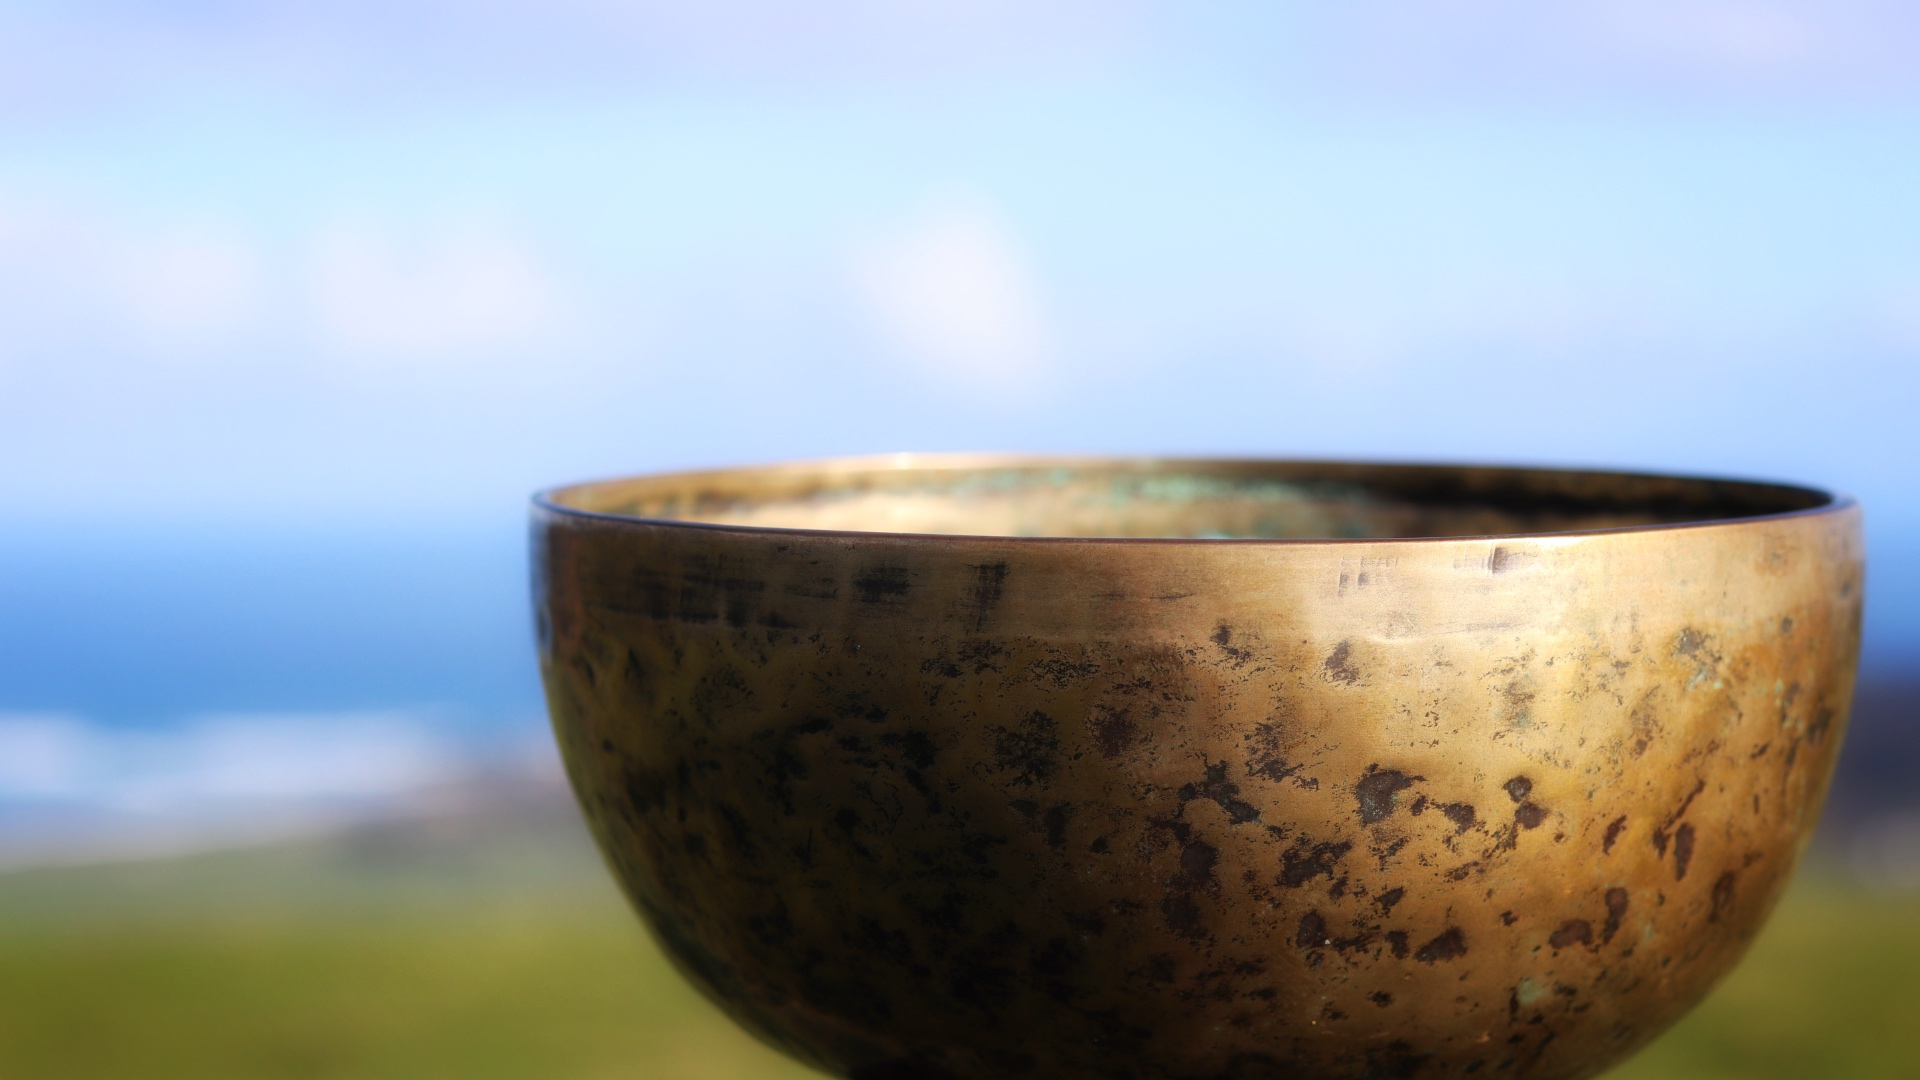 Tibetan Singing Bowl in the Garden